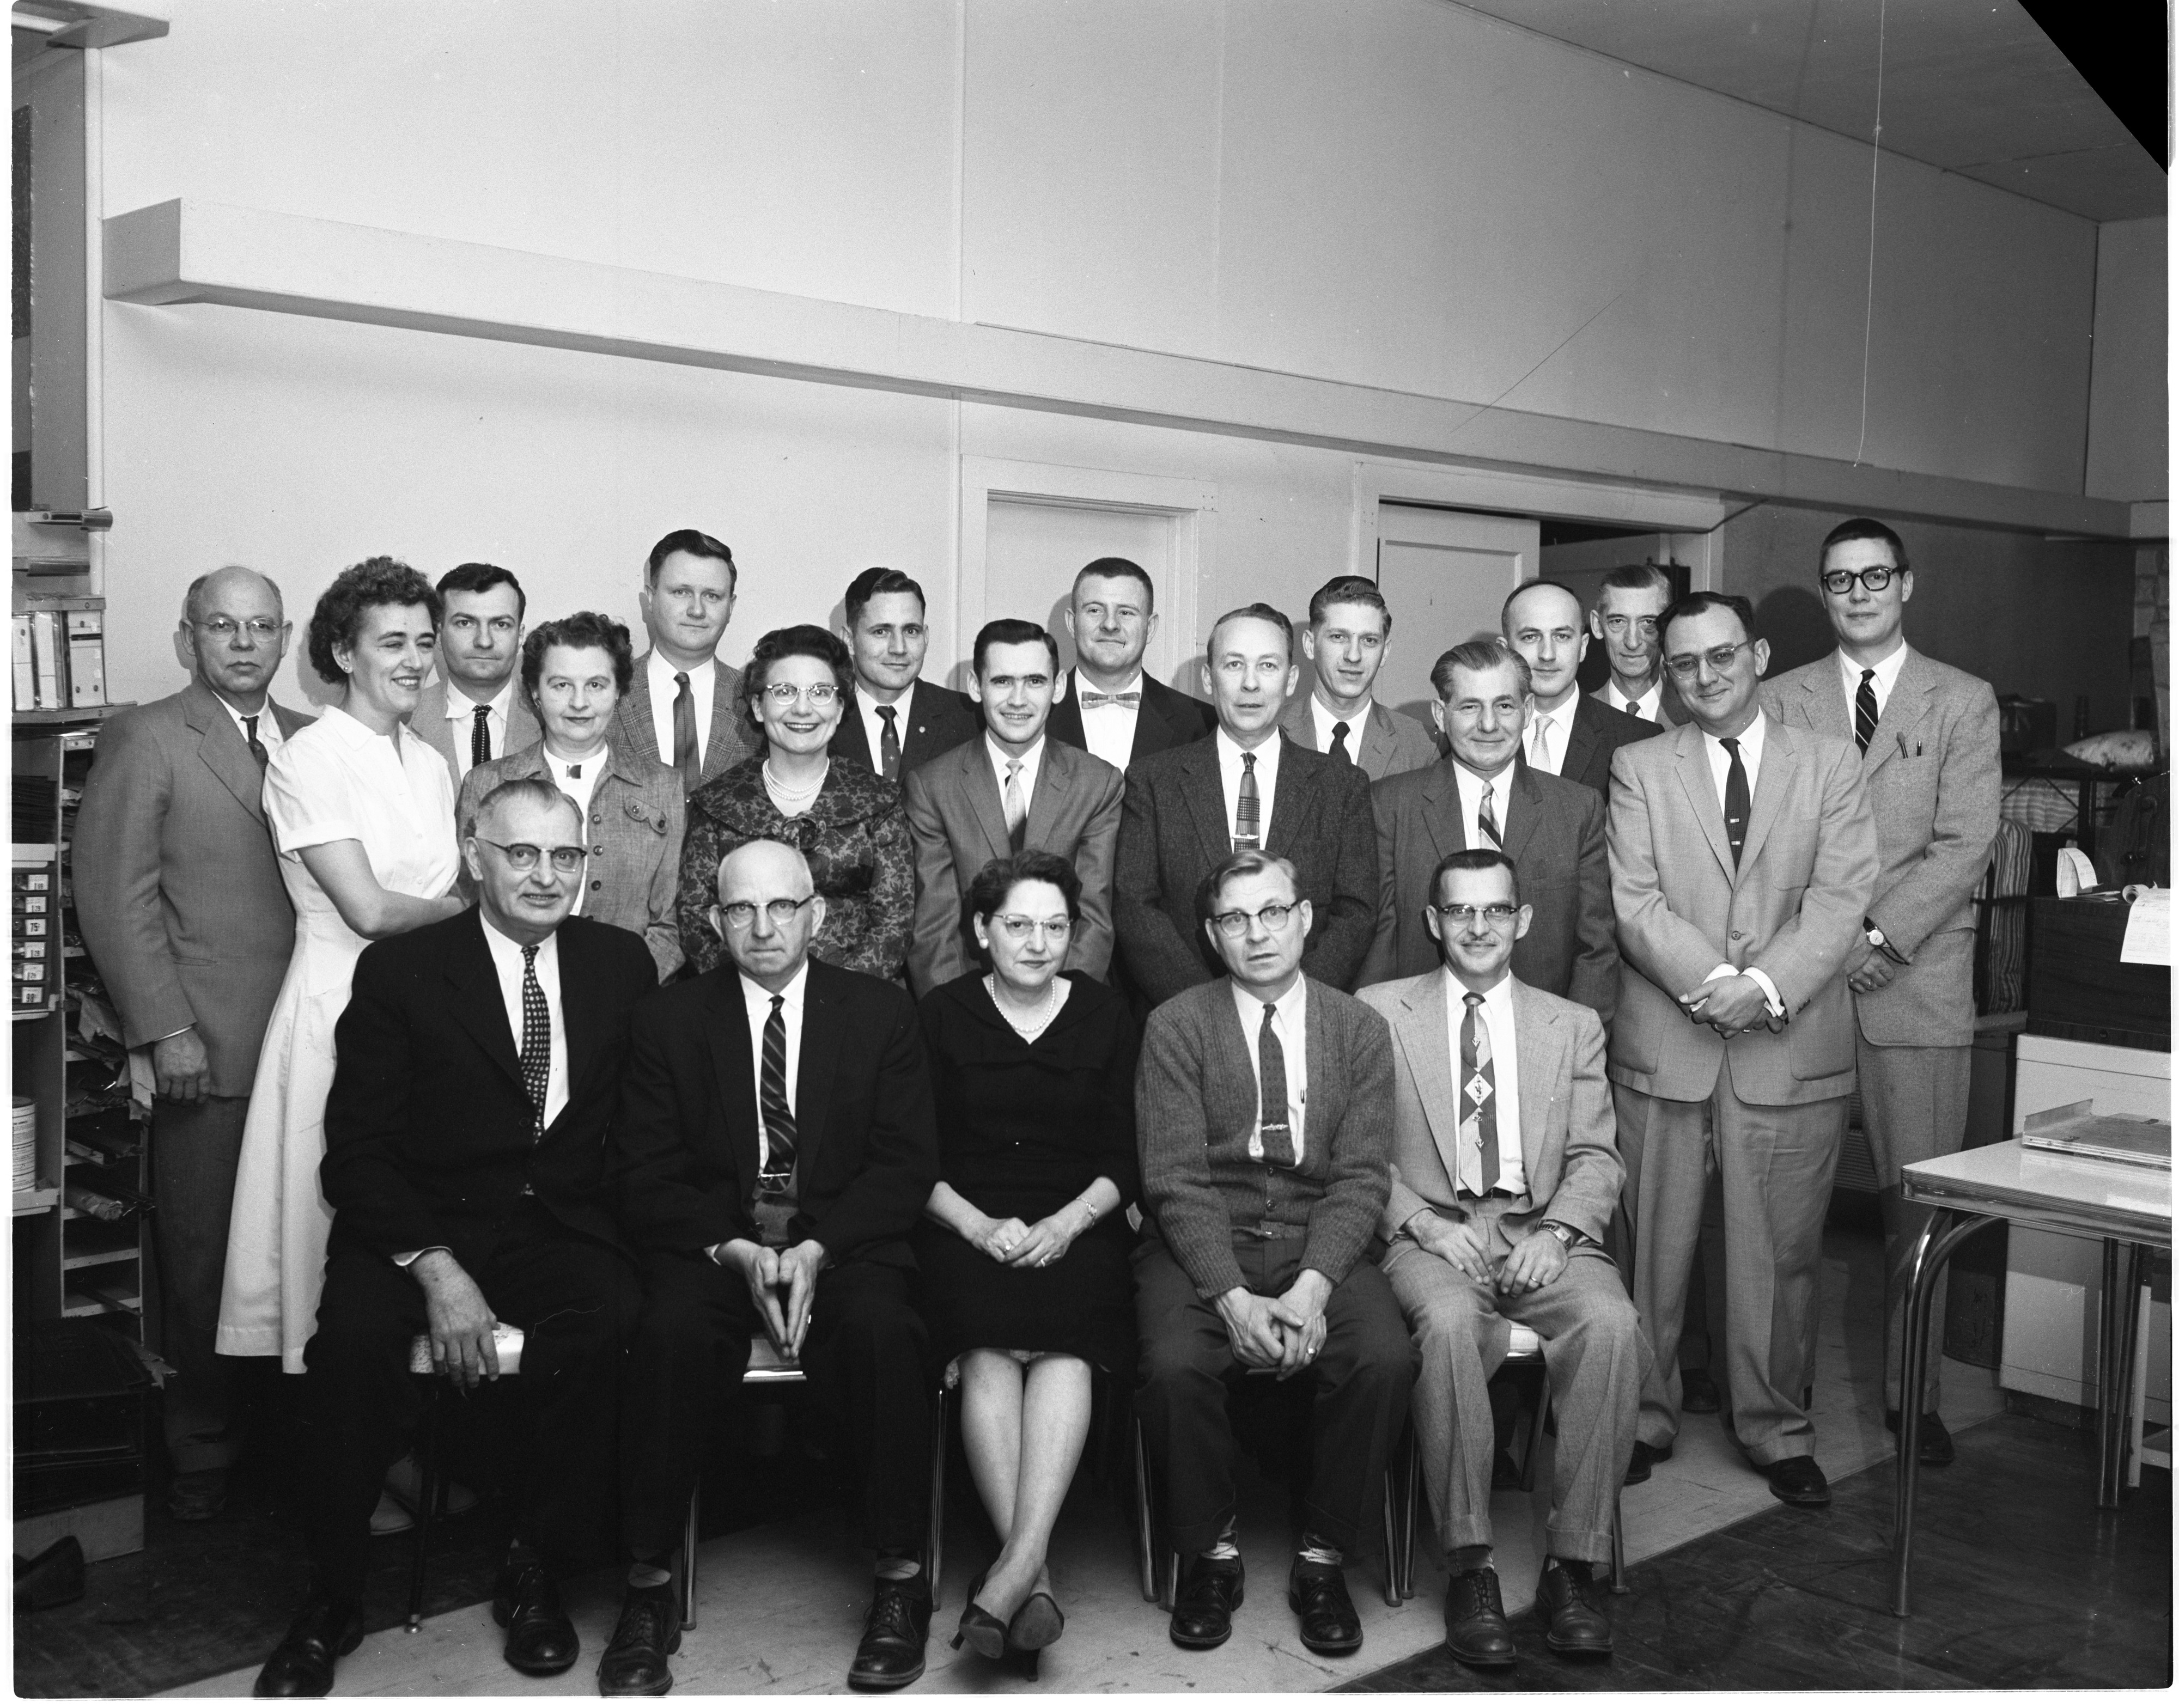 Department Managers Of Ann Arbor Sears Roebuck And Co., January 1959 image